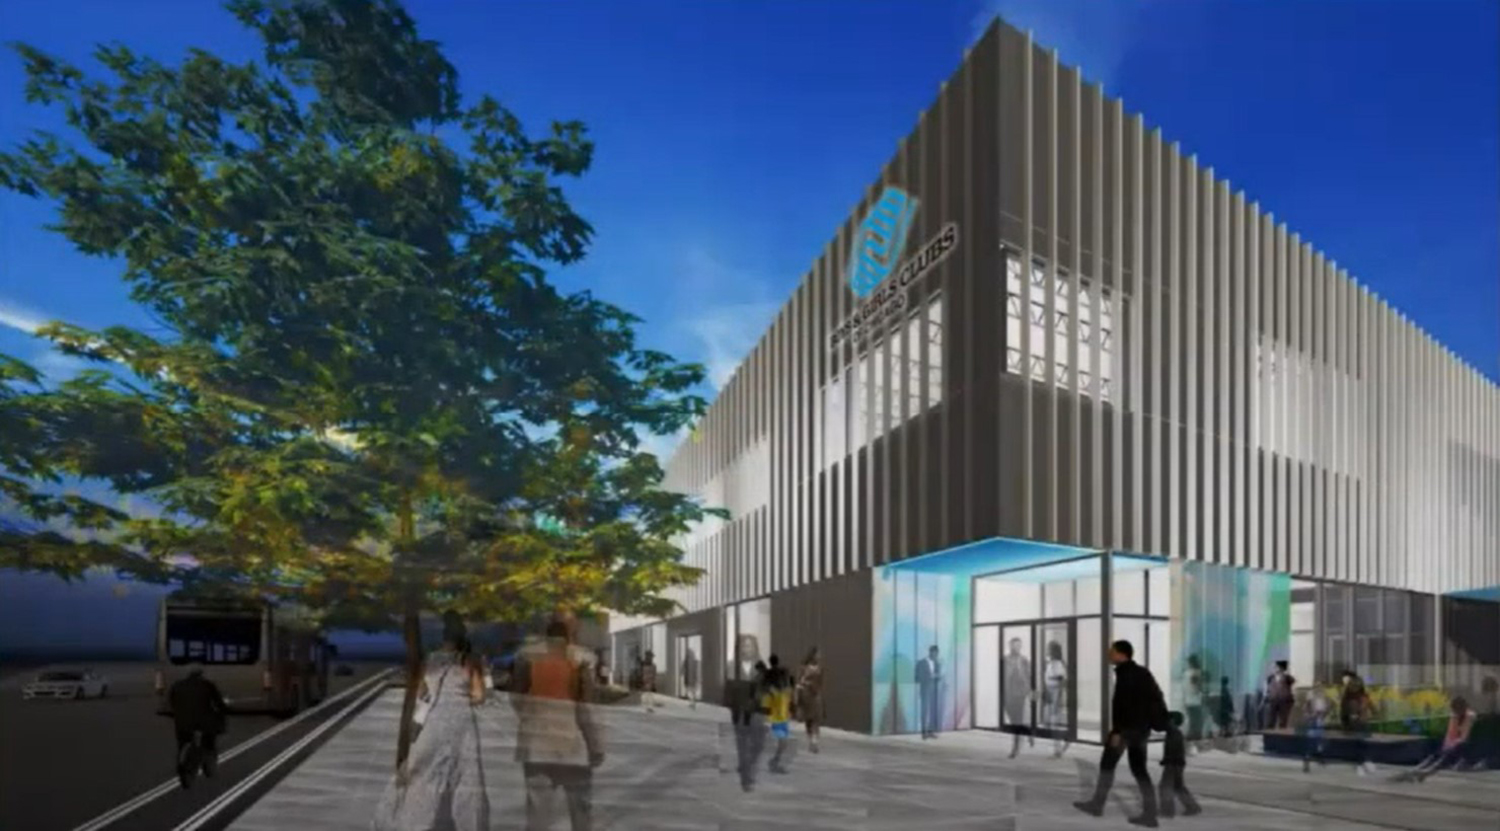 Boys and Girls Club of Chicago at 4433 W Chicago Avenue. Rendering by Boys and Girls Club